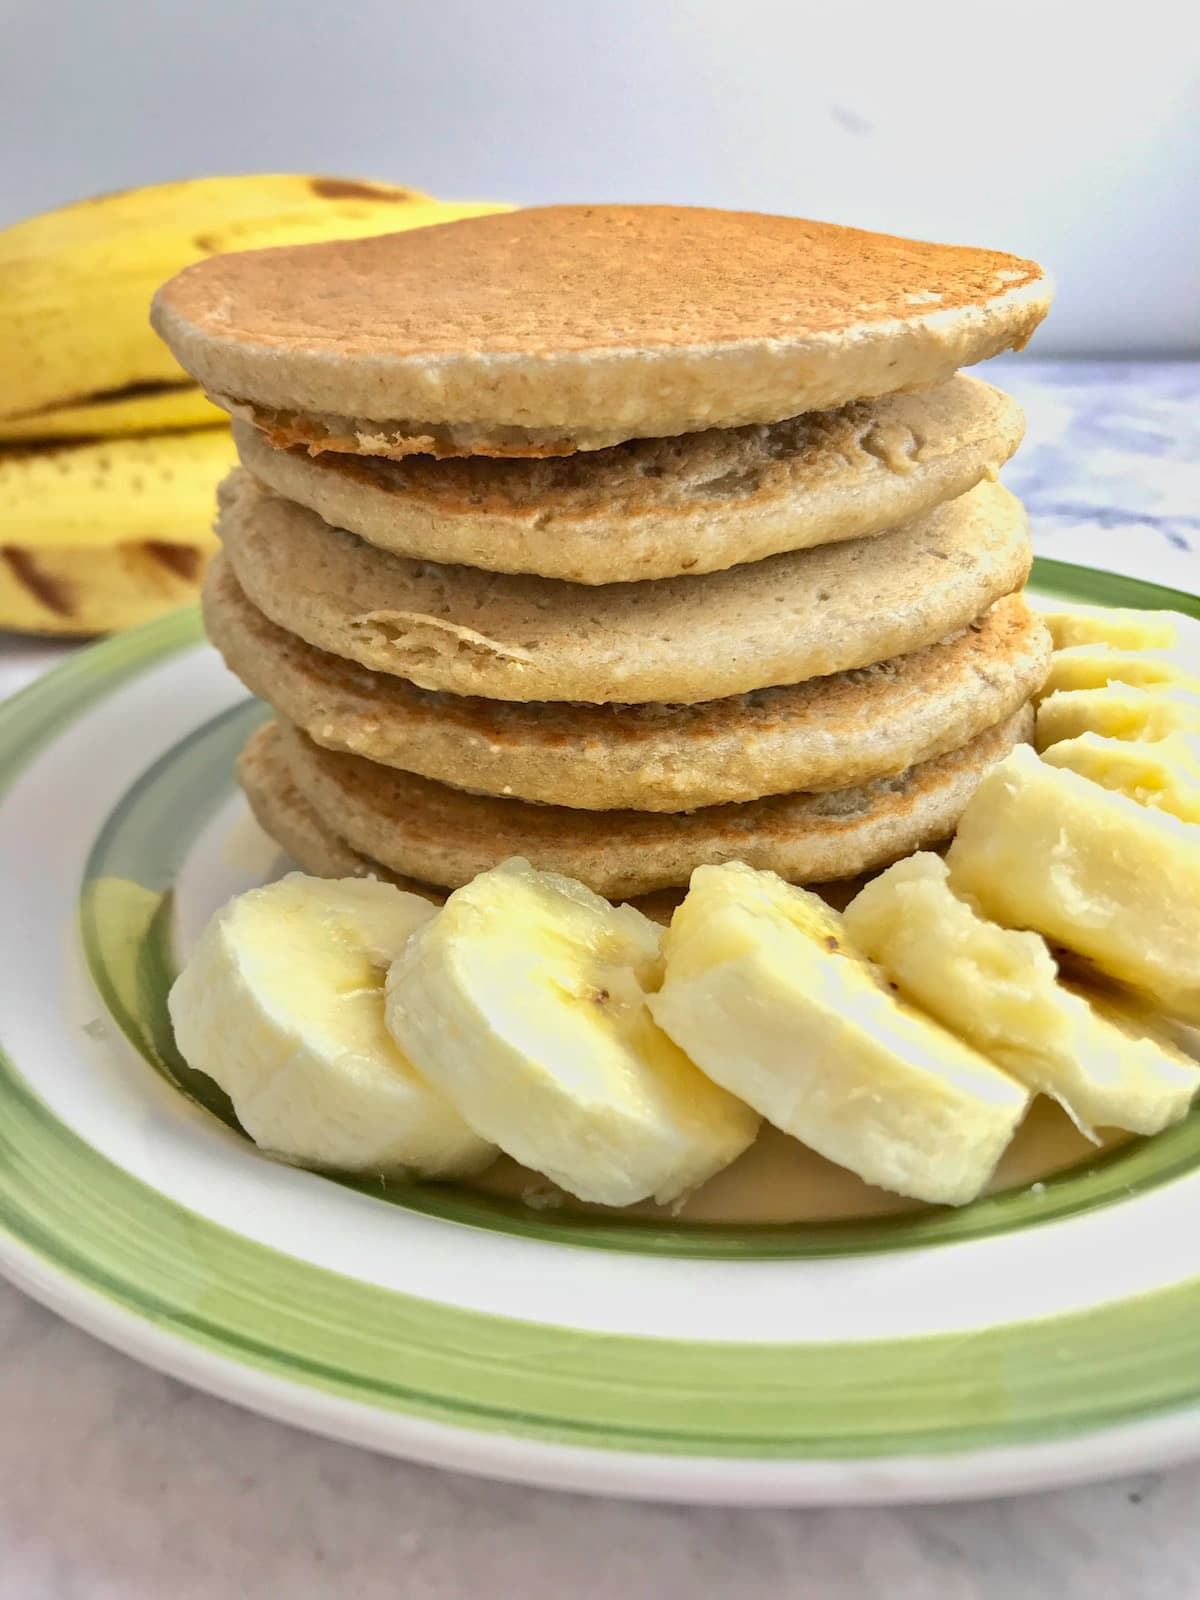 Stack of pancakes with banana slices on a plate.